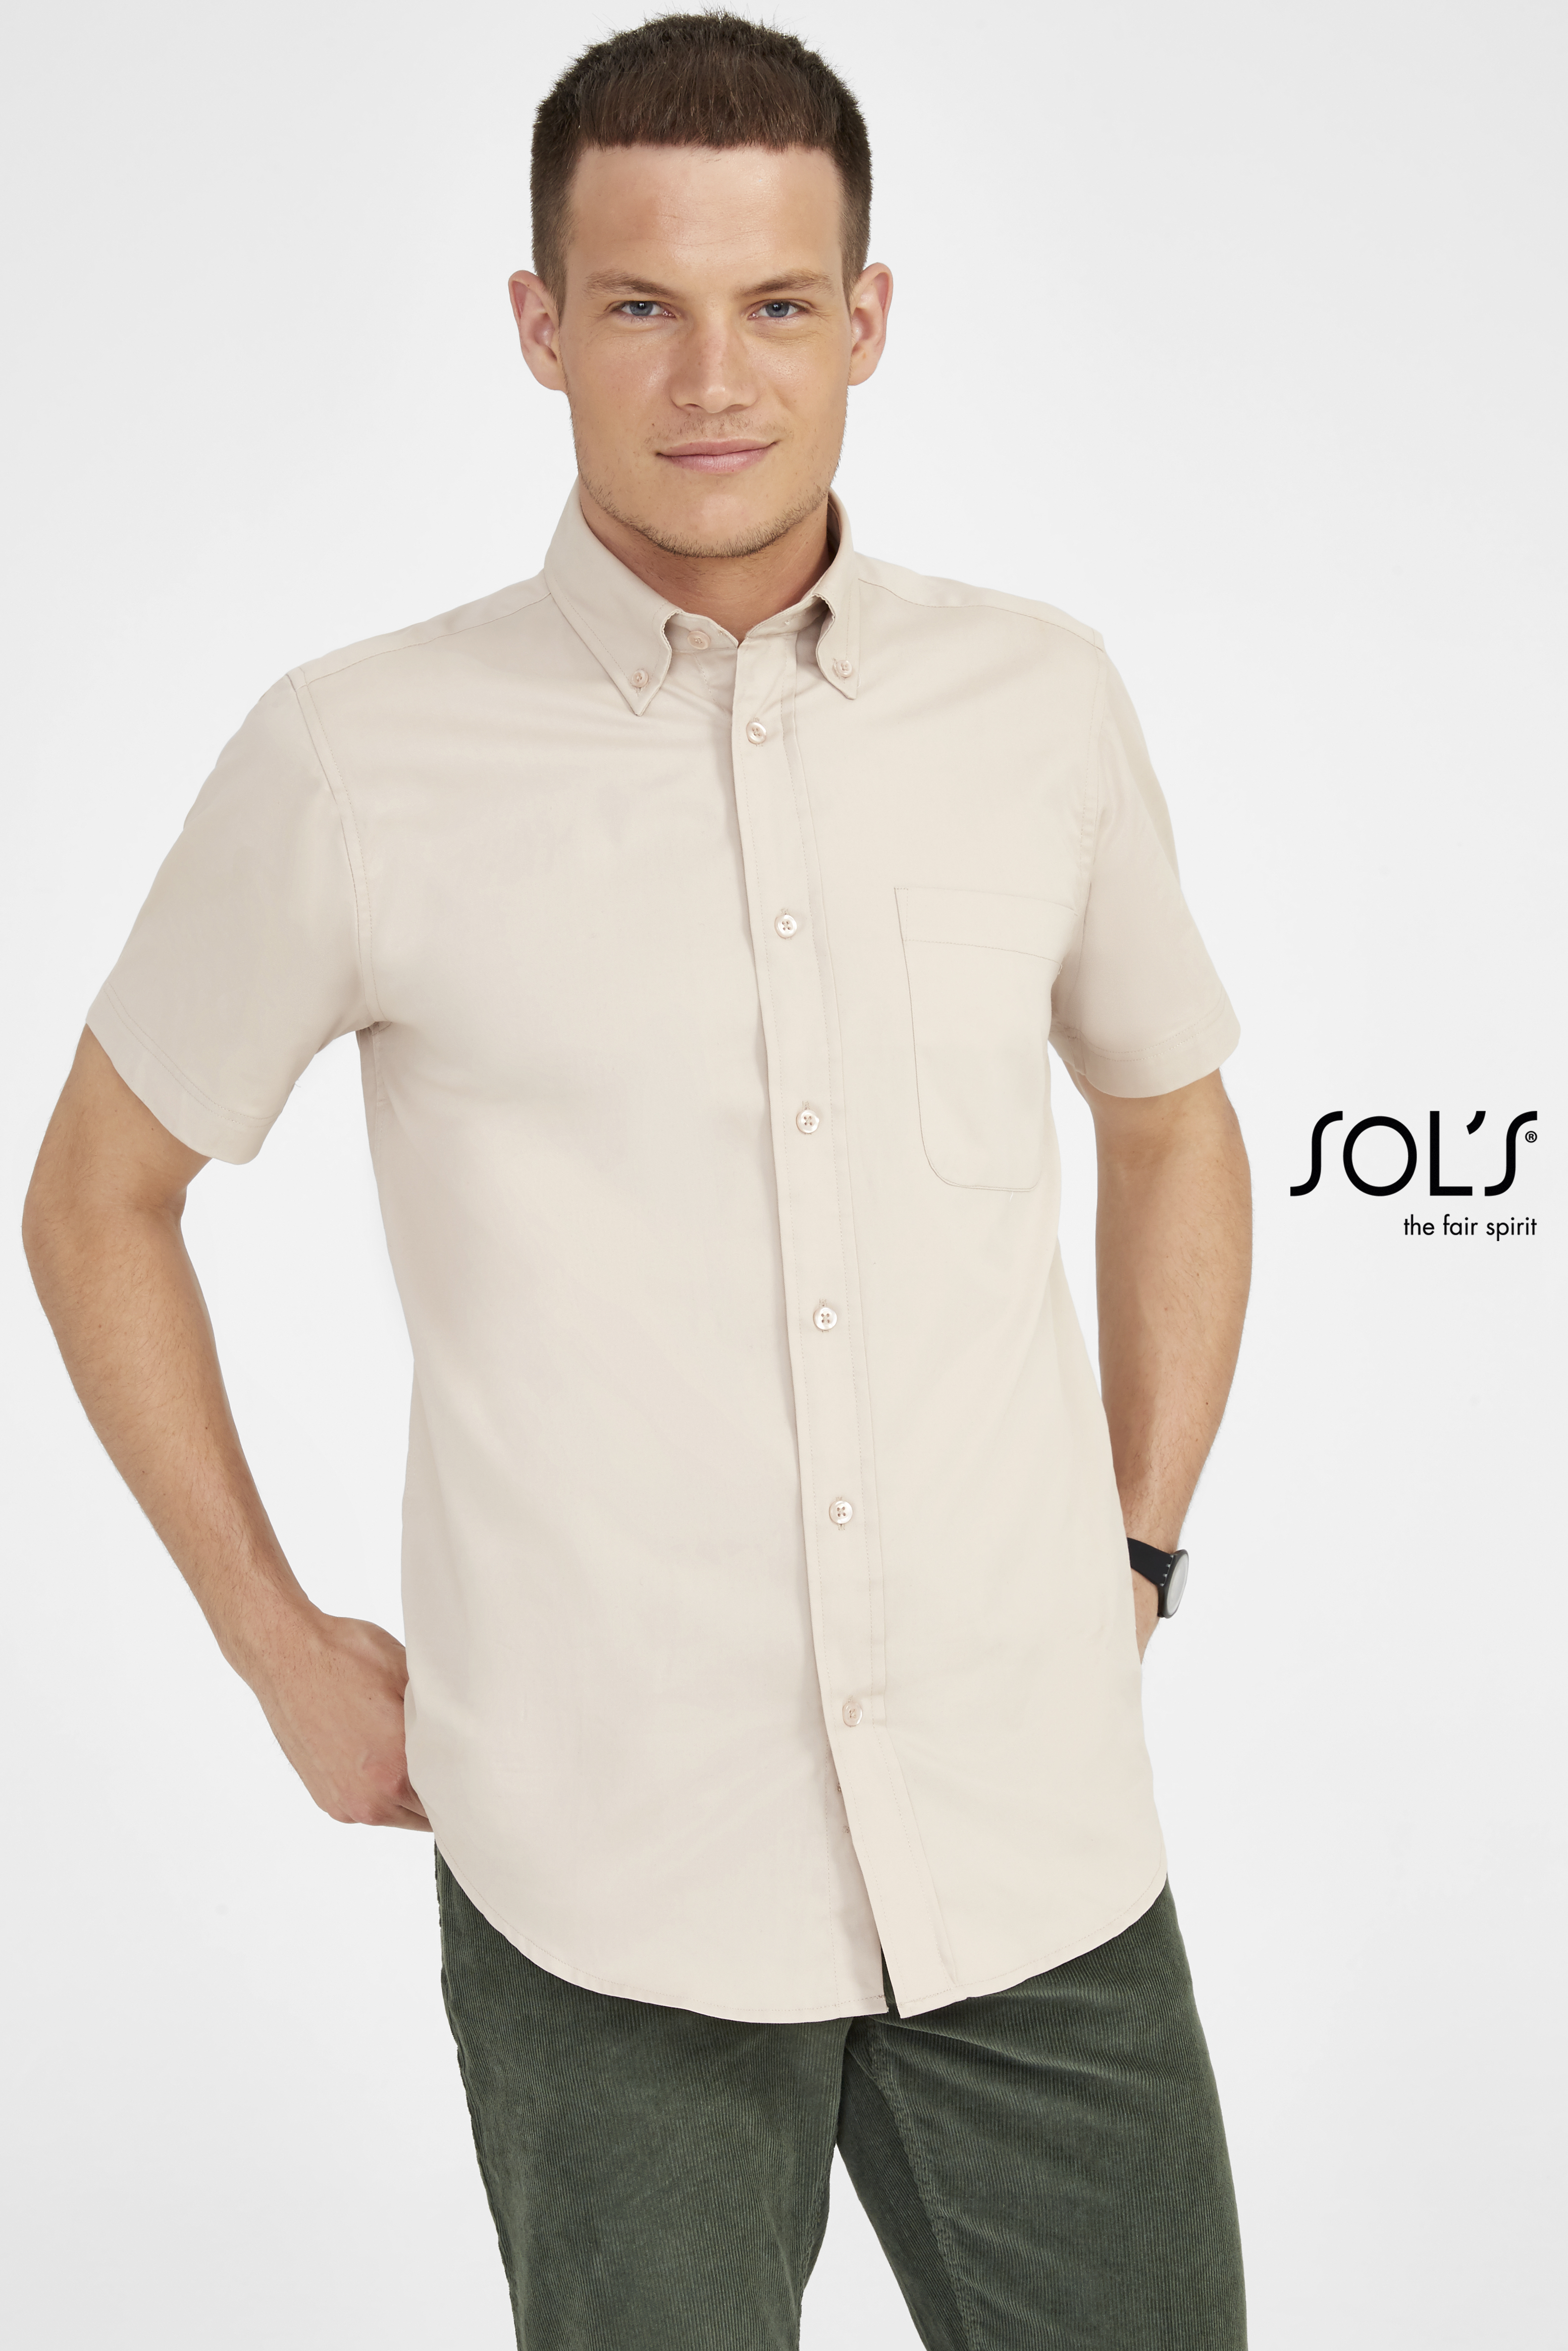 CHEMISE HOMME MANCHES COURTES EN TWILL SOL'S BROOKLYN